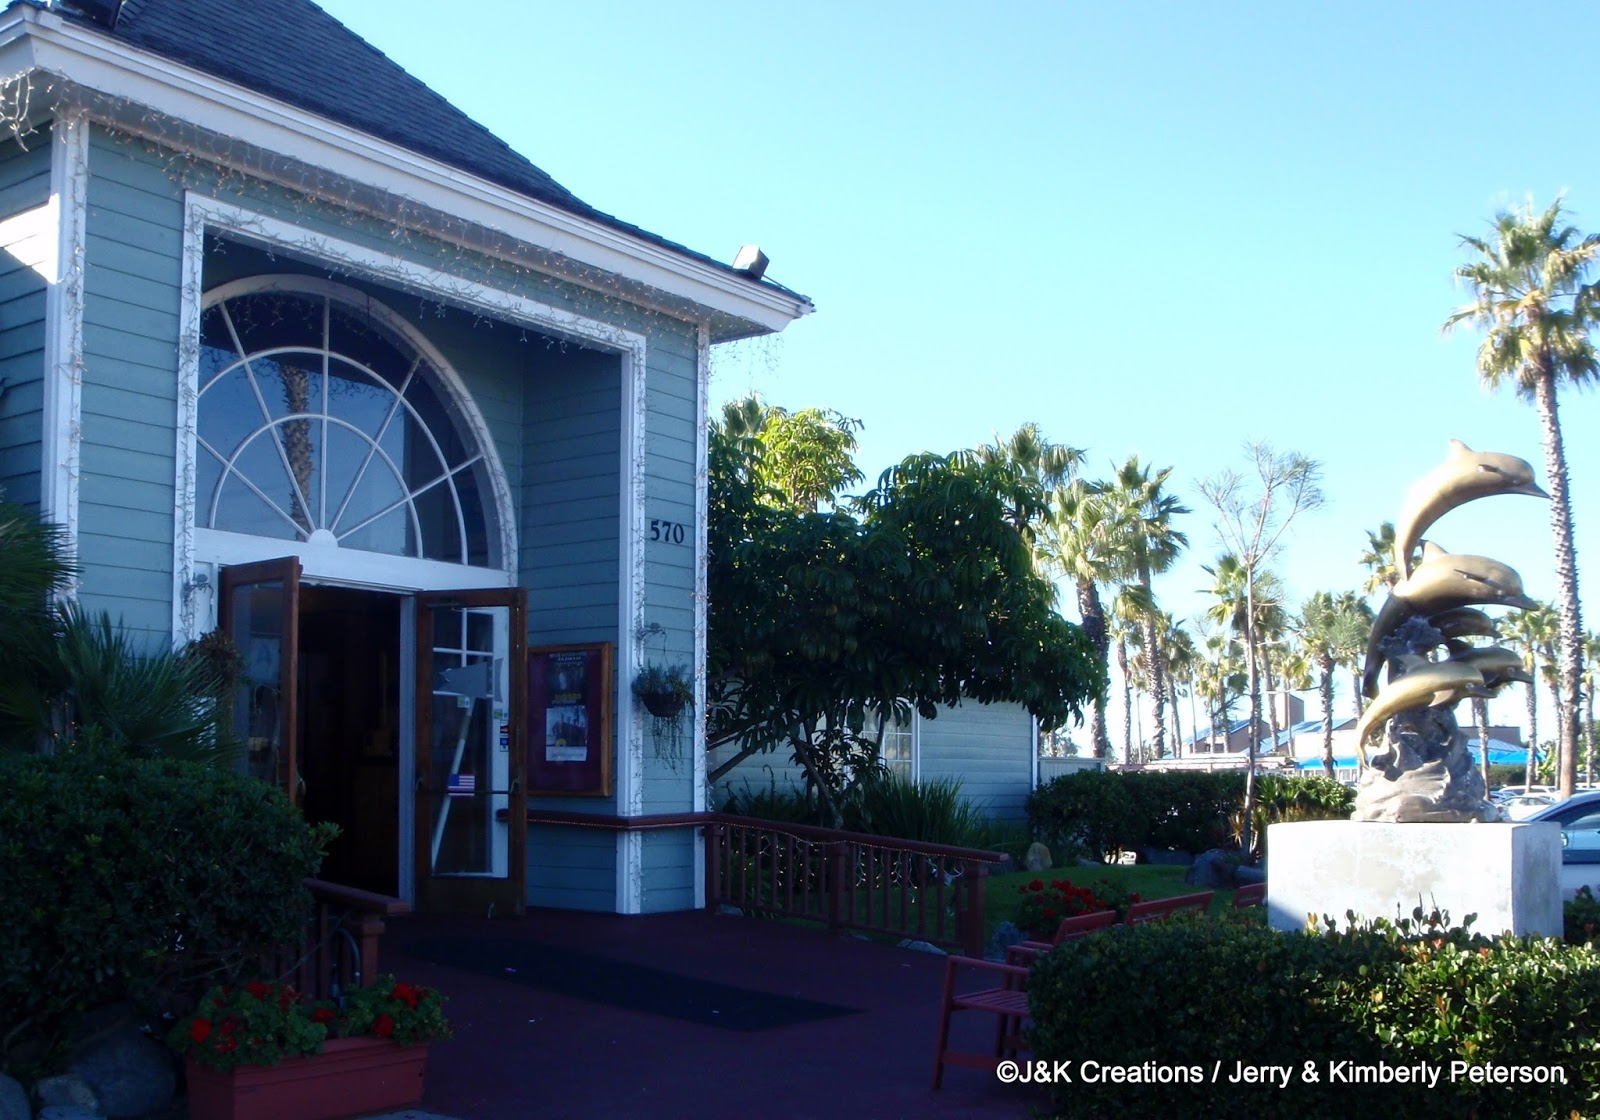 Chula Vista Rv Resort Special: Along The Way With J&K....: South Bay Fish & Grill